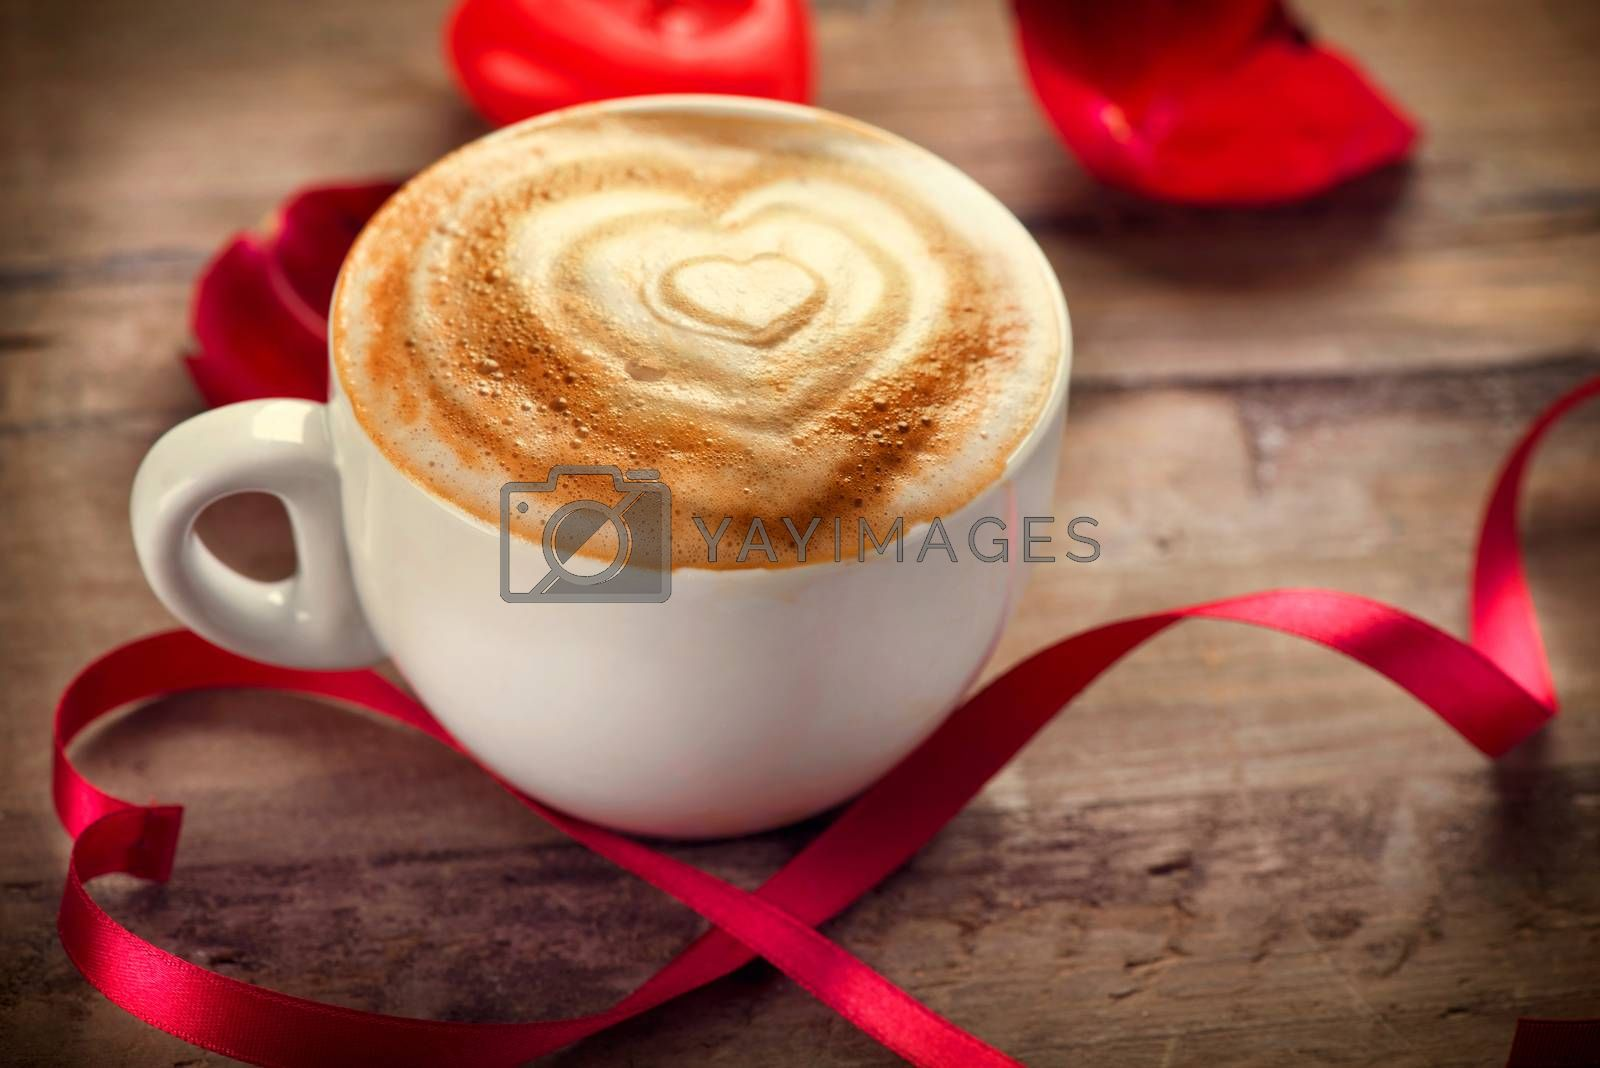 Valentine's Day Coffee or Cappuccino with heart on foam by SubbotinaA